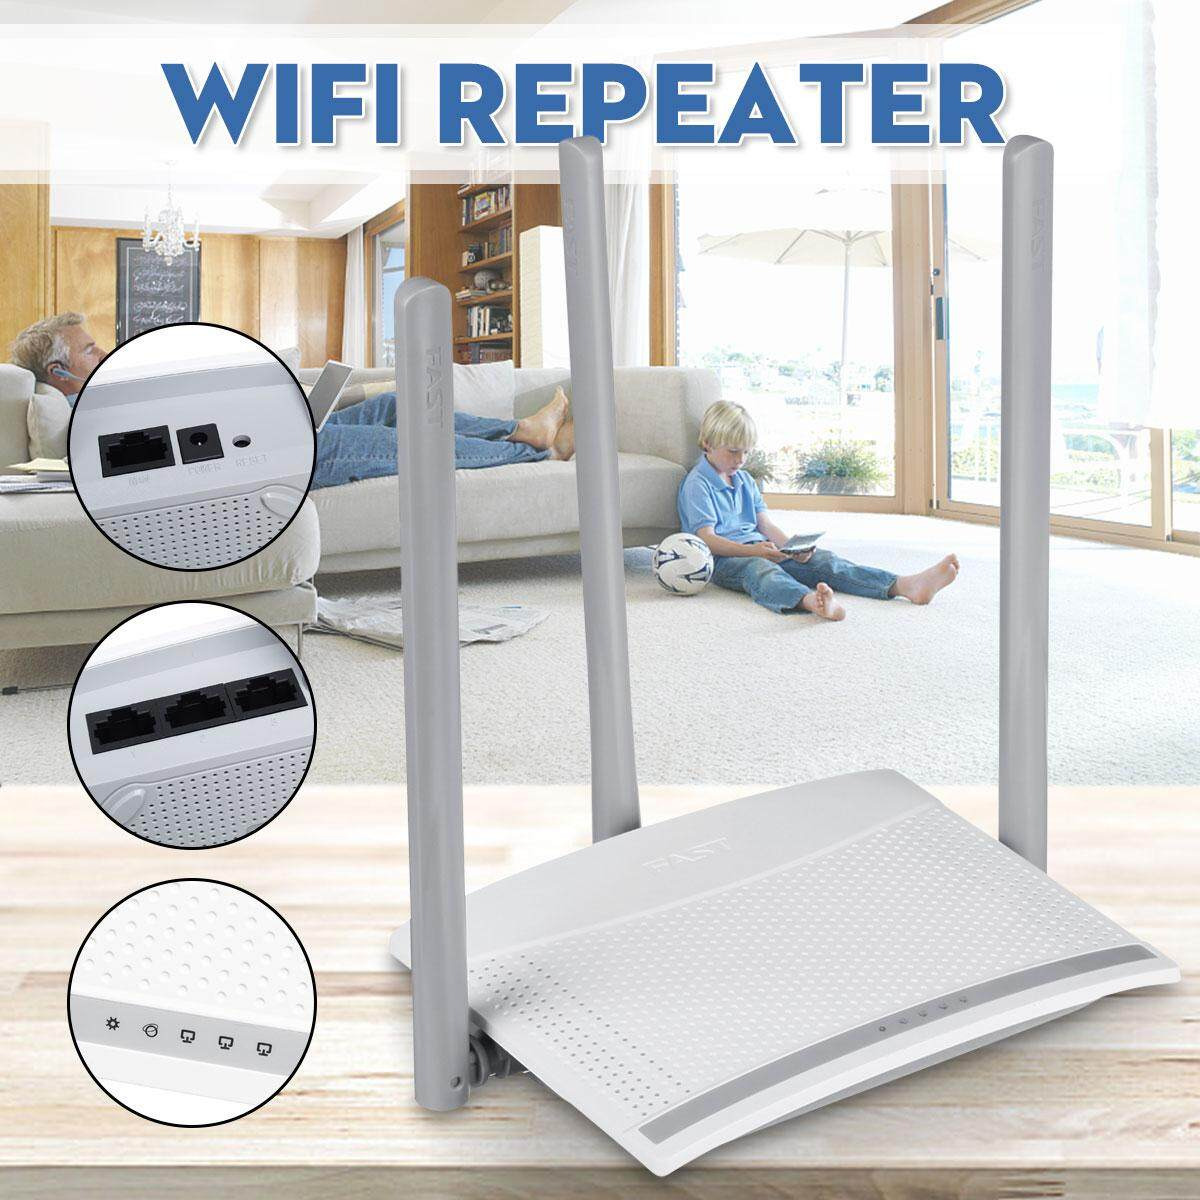 【Free Shipping + Flash Deal】WiFi Repeater FW315R high power wireless WIFI router Broadband high speed 100M fiber